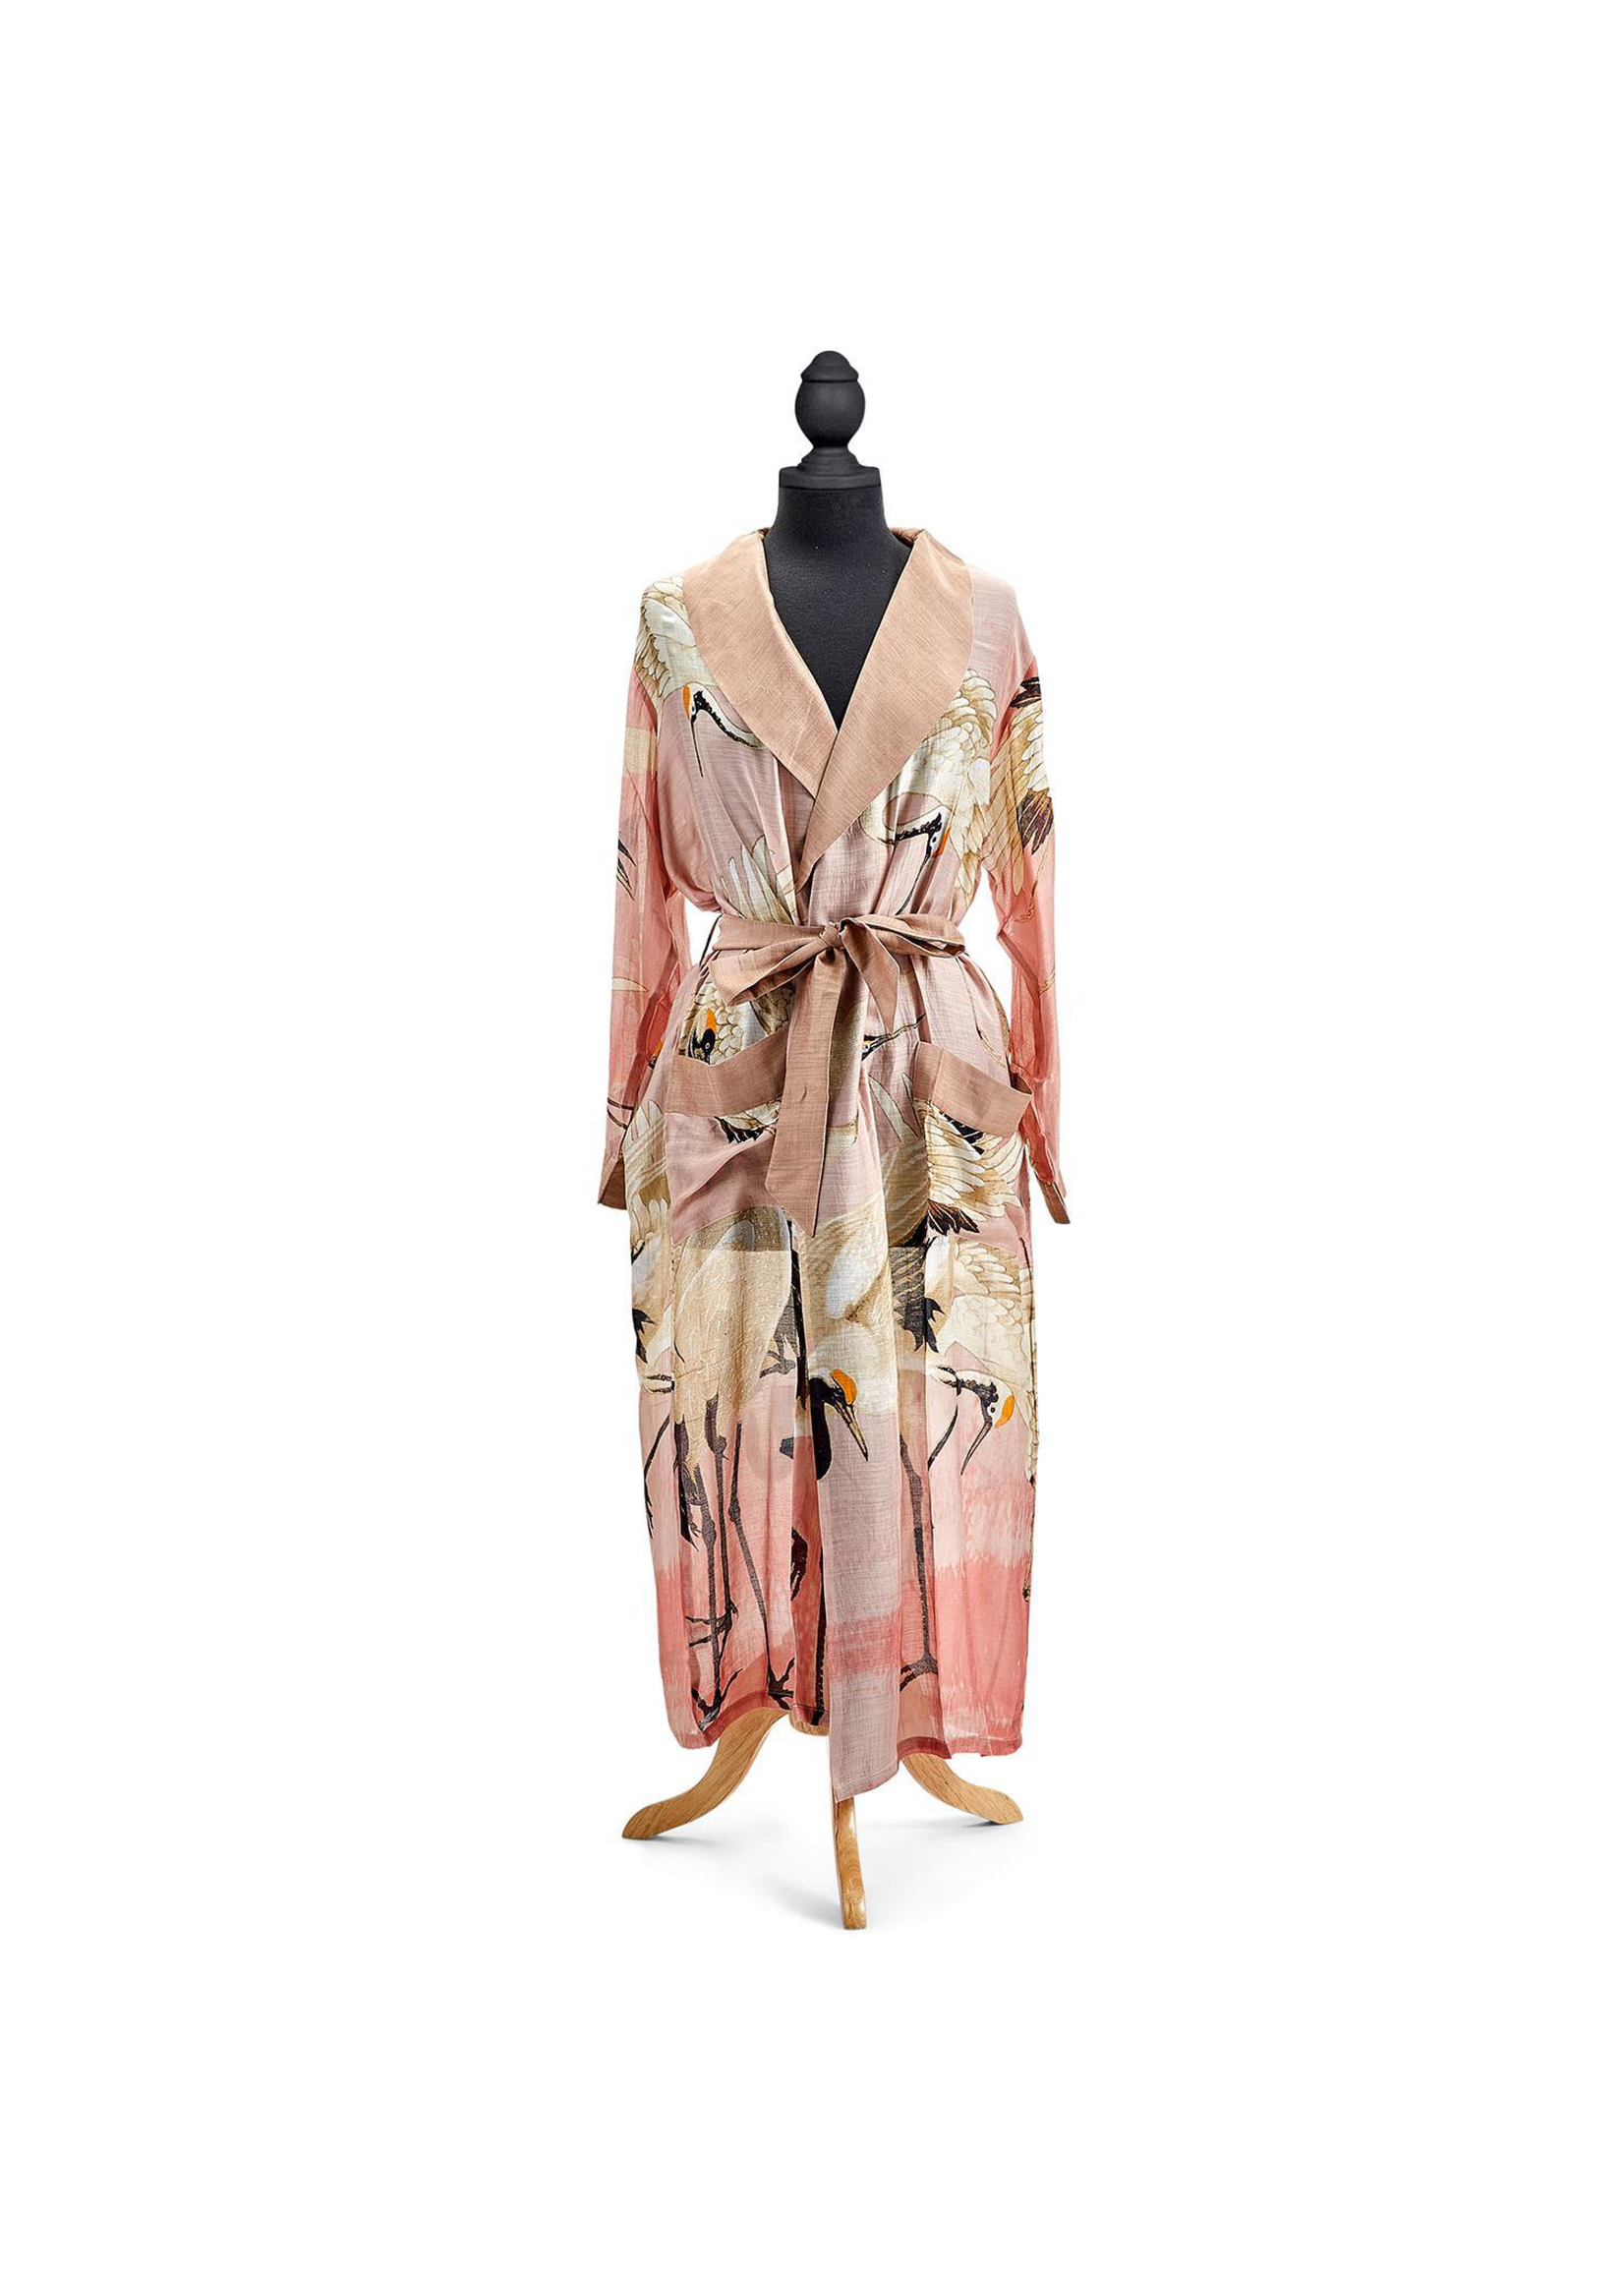 Two's Company, Inc. Pink Heron Robe Gown